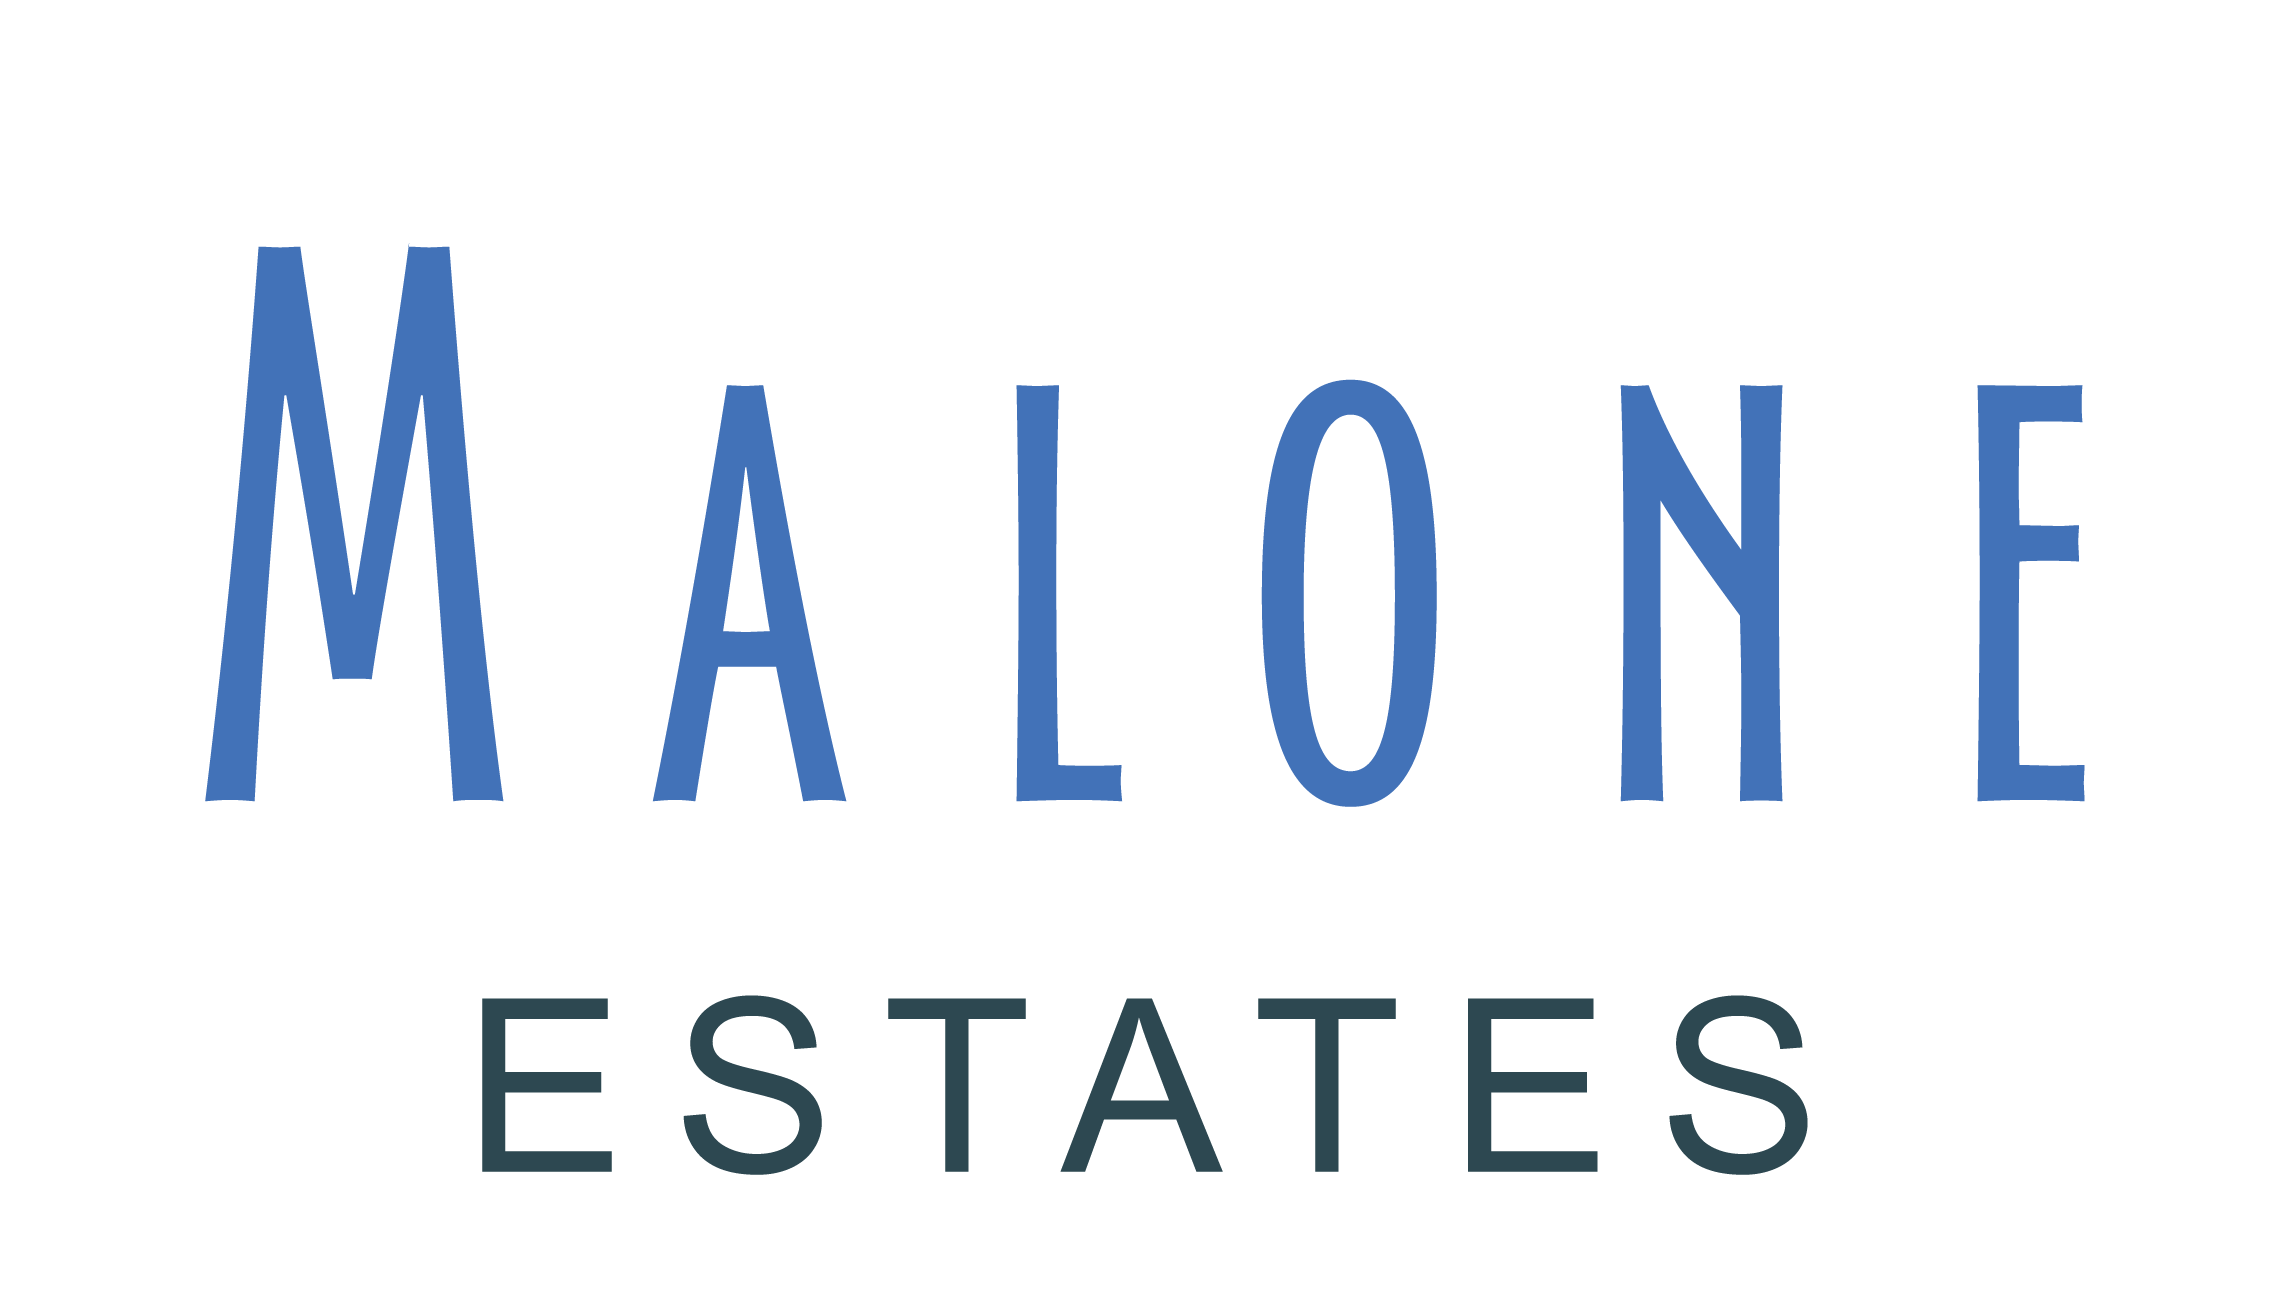 Malone Estates Marketing Logo in Queen Creek Arizona by Mattamy Homes